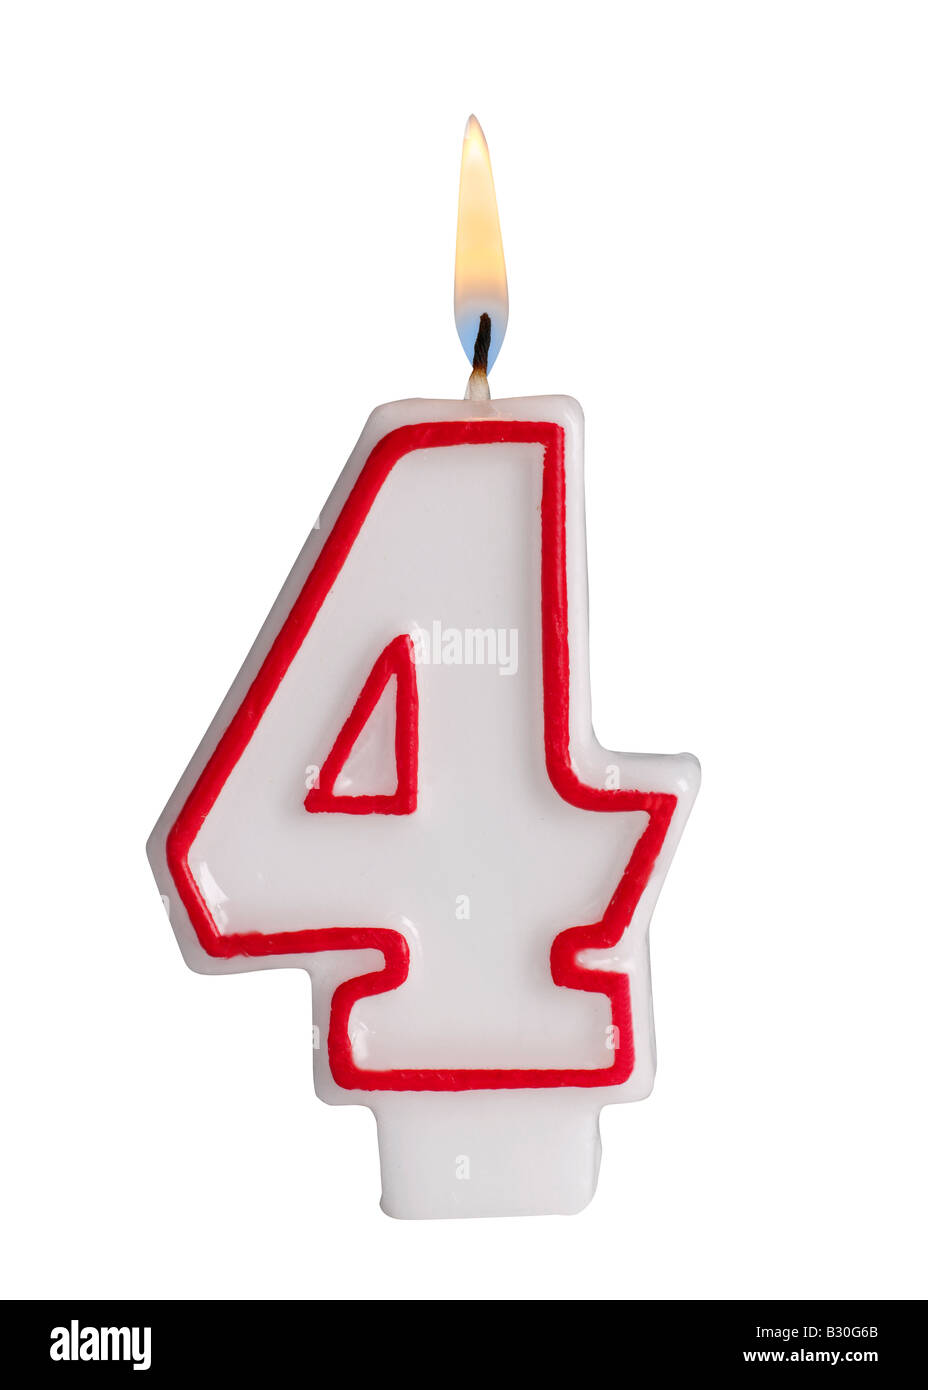 Number 4 candle - Stock Image